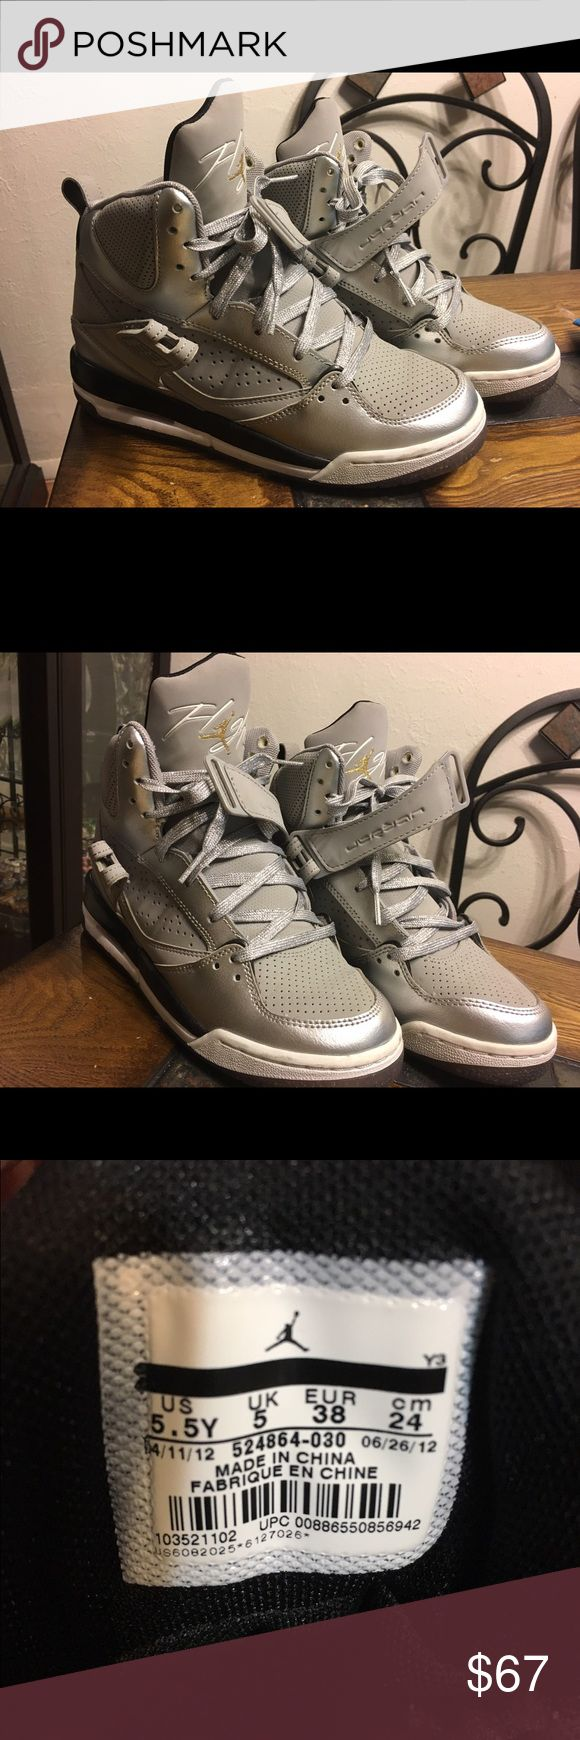 Air Jordan Flight shoes Silver and grey high top flight shoes with gold touch on symbol and on back. Like new. Got as a Christmas gift and only wore twice. Jordan Shoes Sneakers